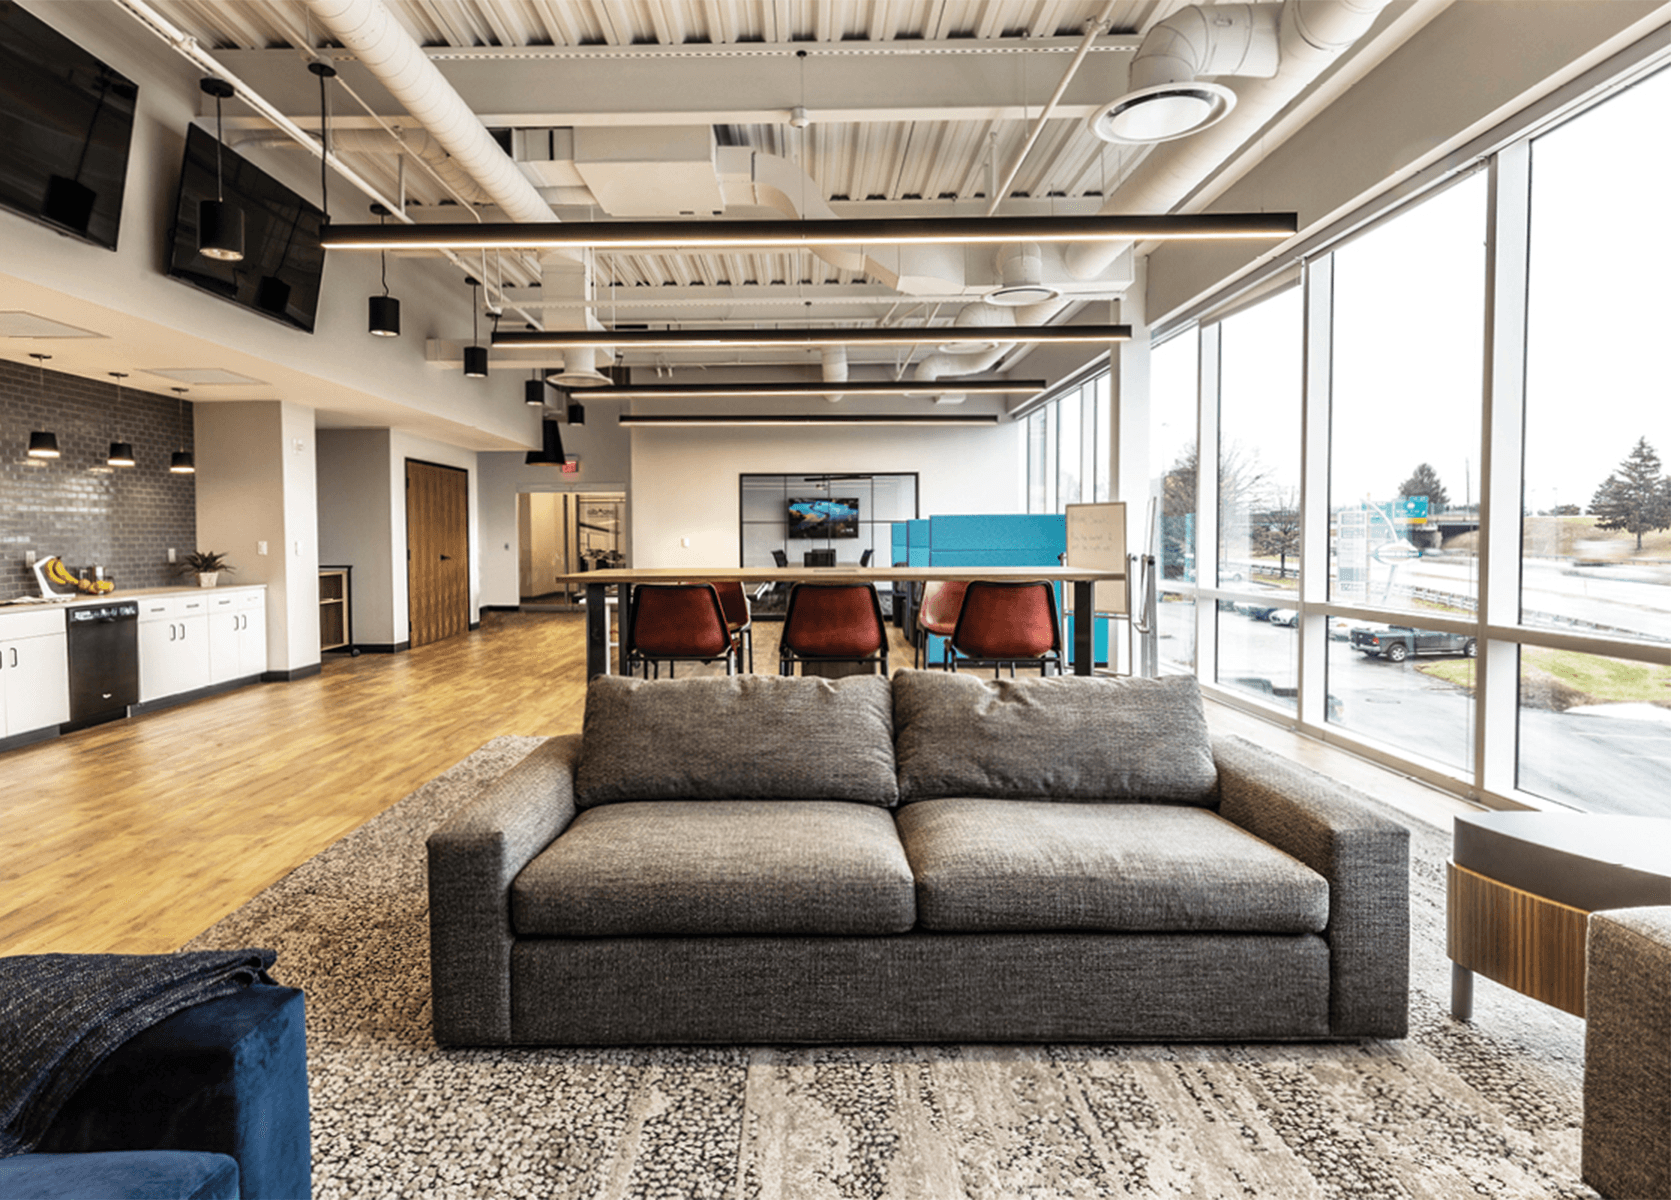 collaborative workspace with a café, couches, and tables